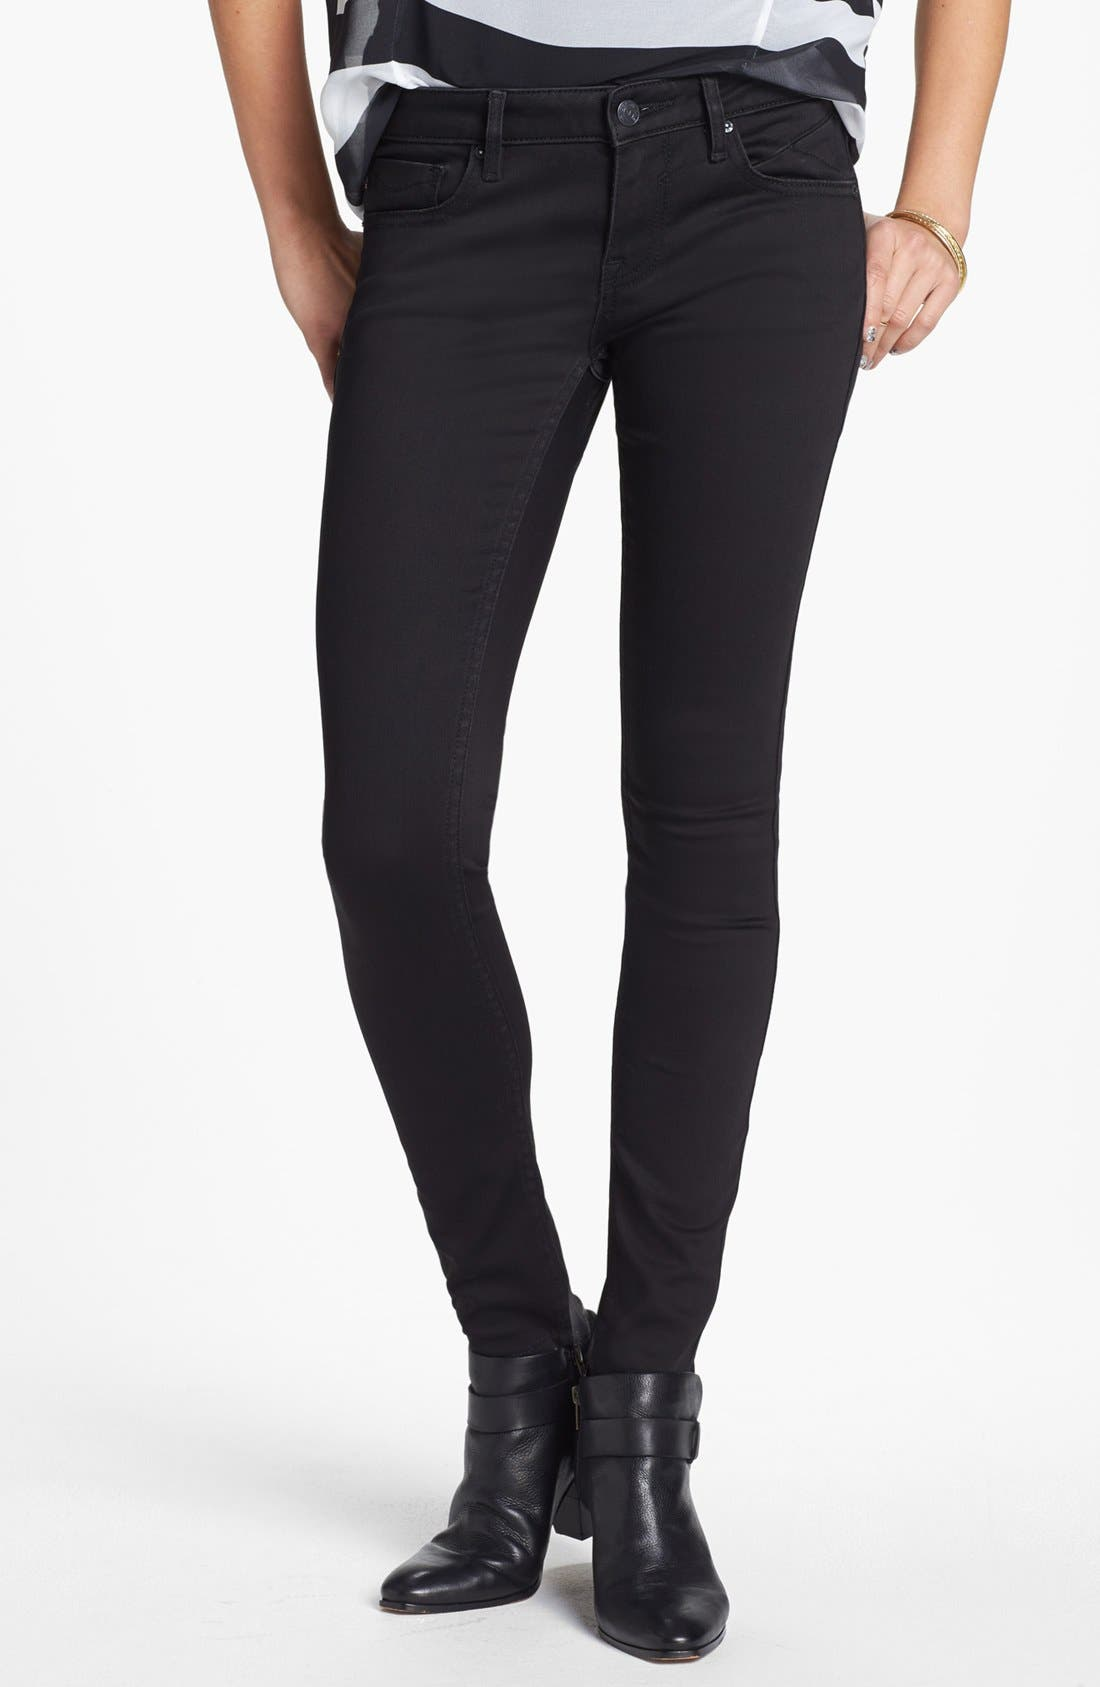 Alternate Image 1 Selected - Vigoss 'Chelsea' Super Stretchy Skinny Jeans (Juniors) (Online Only)